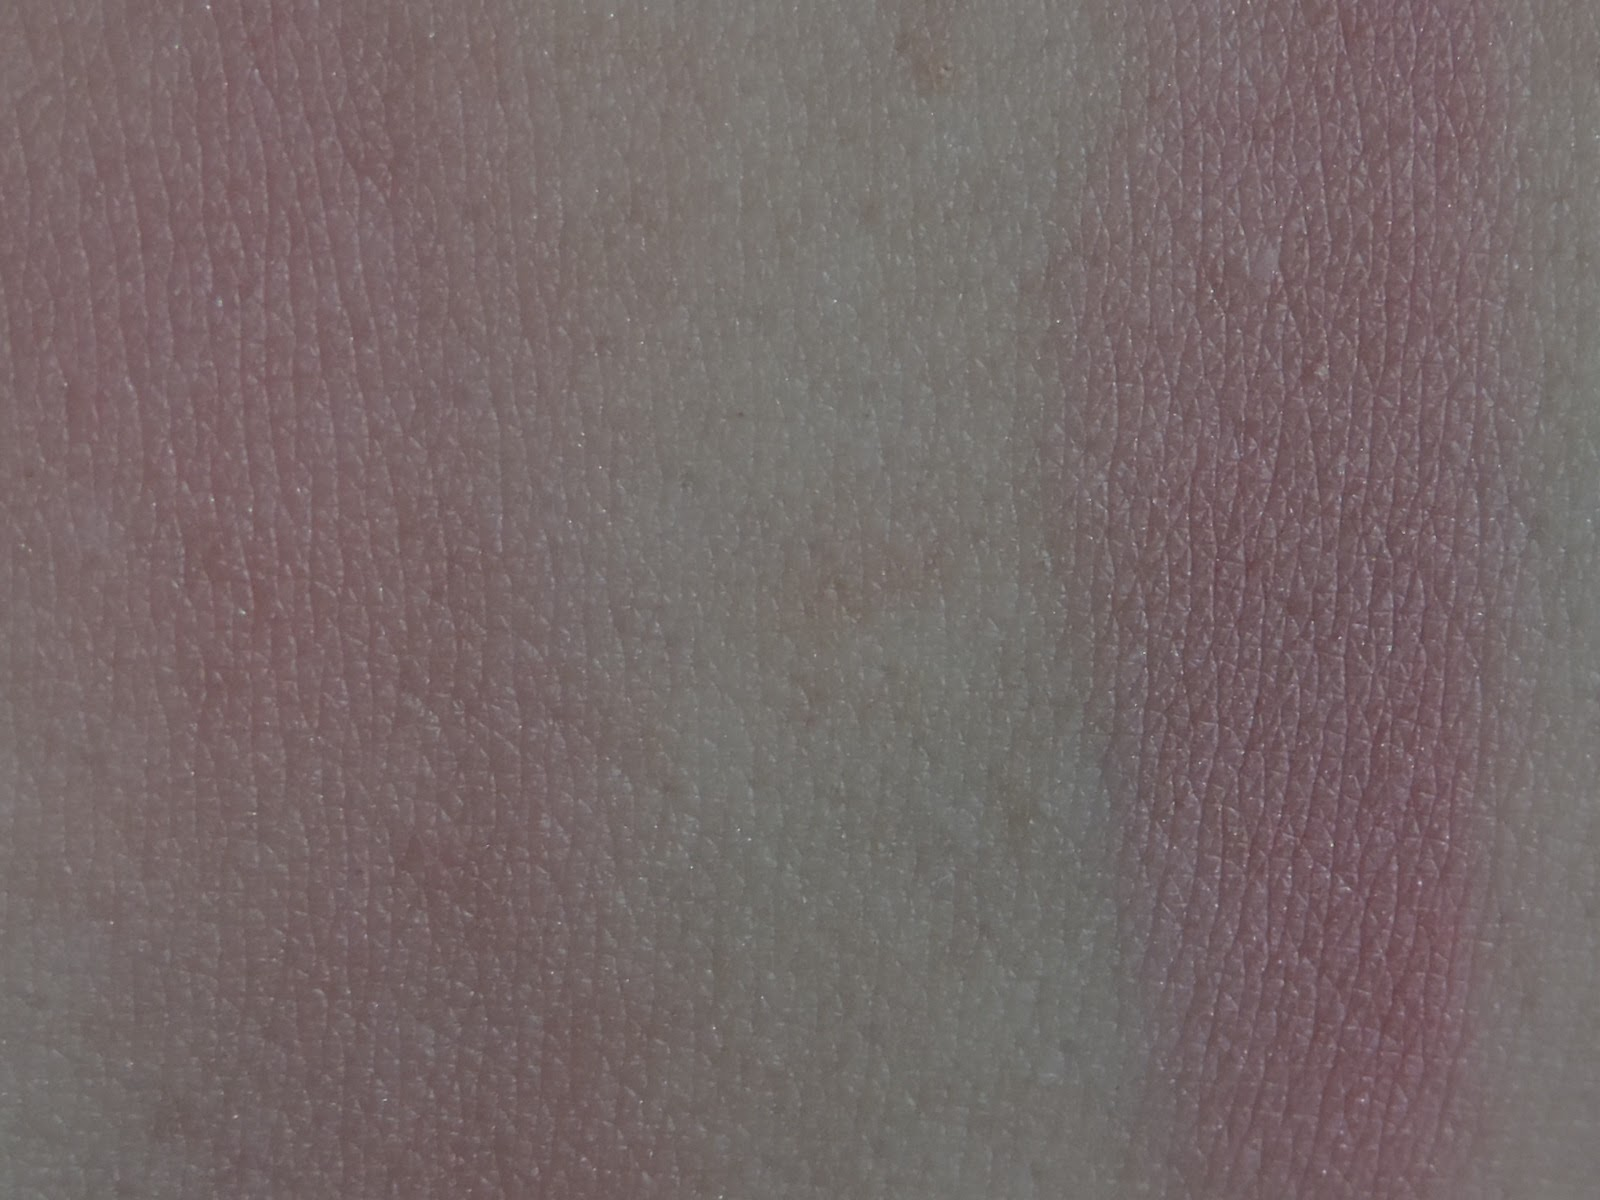 Swatches of Radiant Magenta (left) blended out (right) single swipe